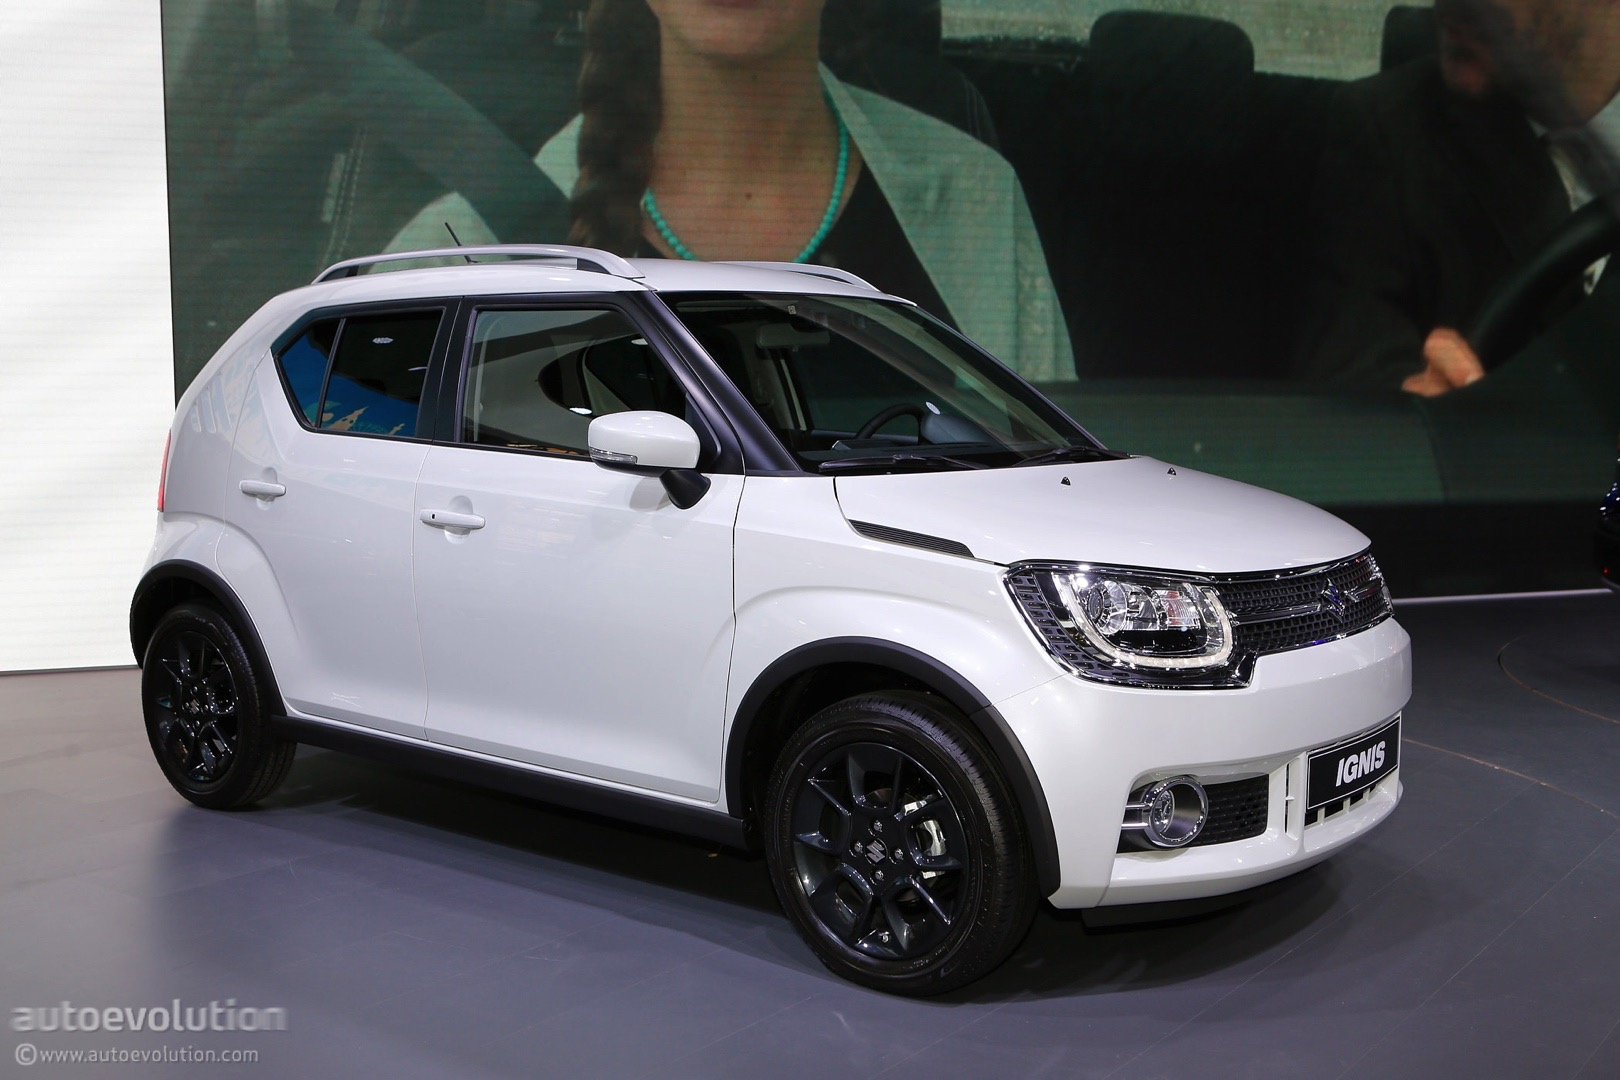 2017 suzuki ignis locks down on paris sx4 s cross facelift still unsightly autoevolution. Black Bedroom Furniture Sets. Home Design Ideas